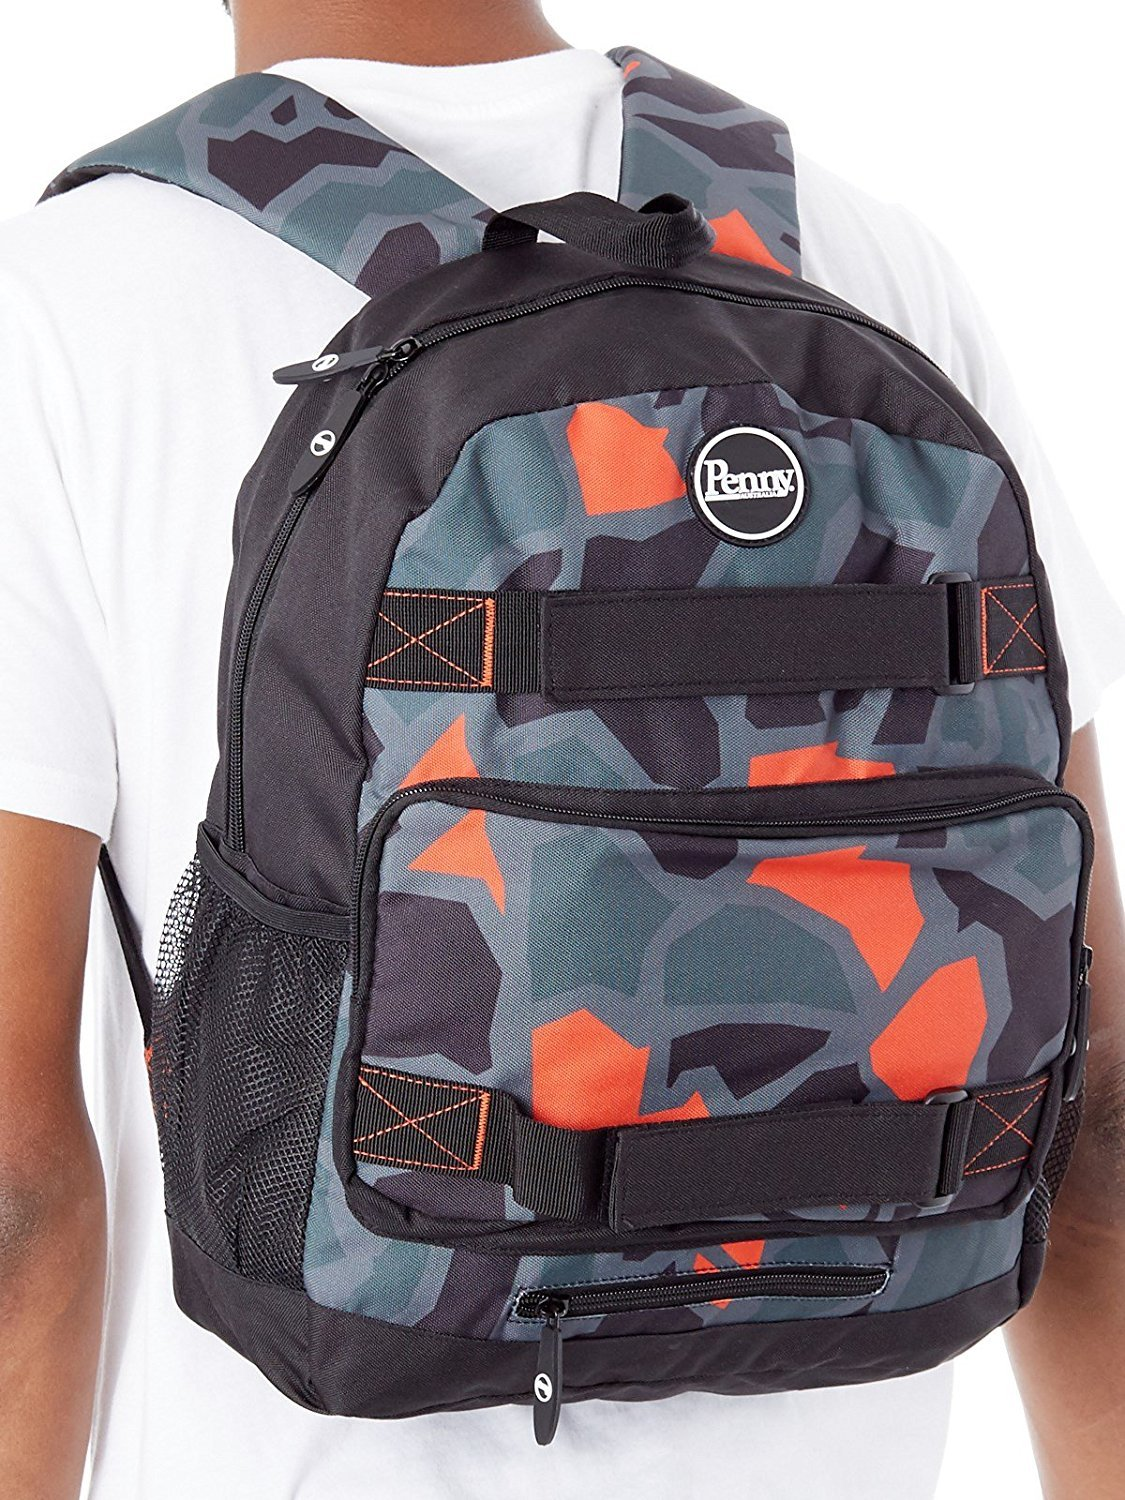 Penny Pouch Backpack